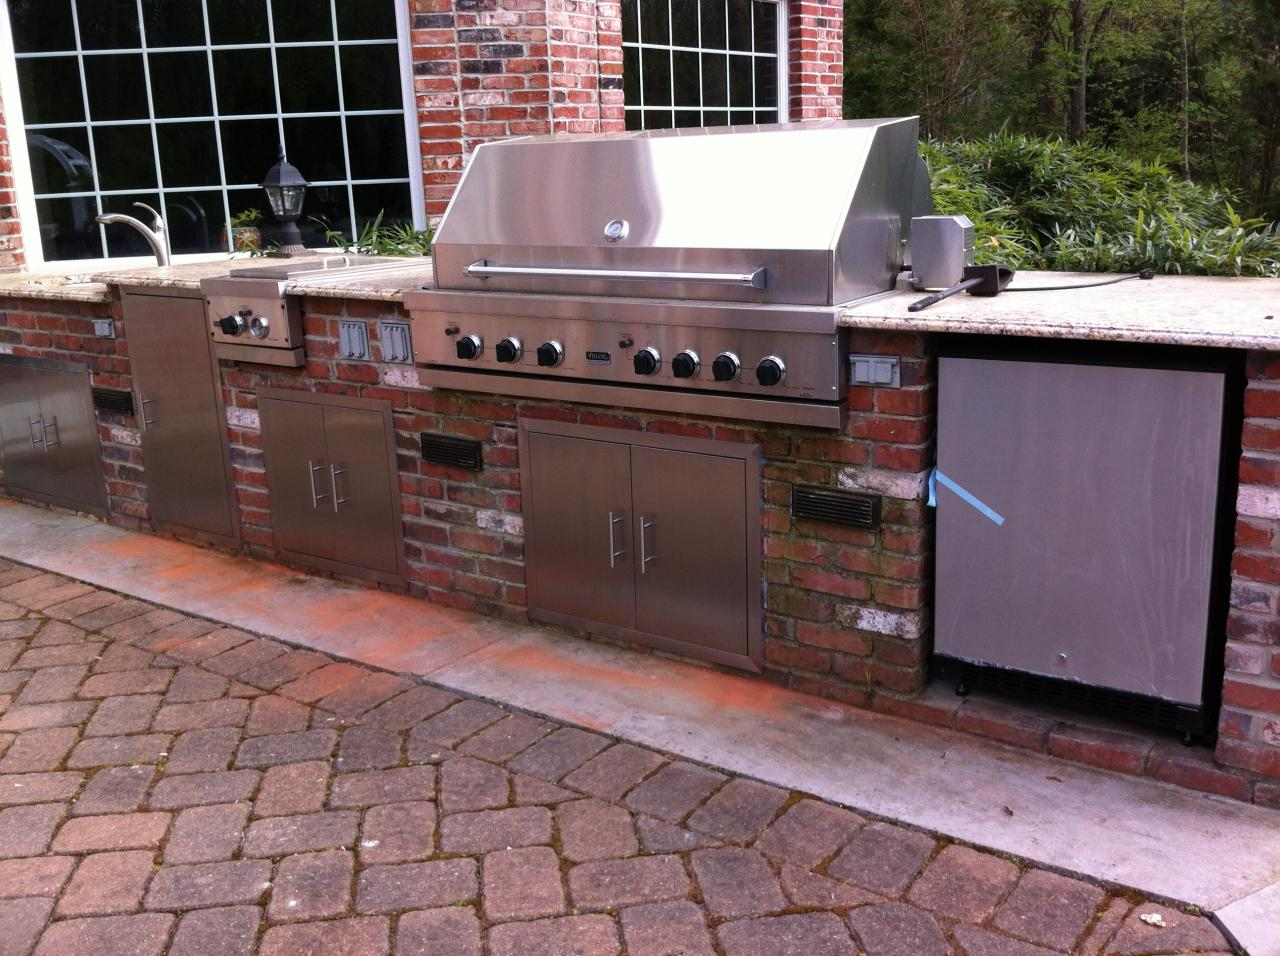 j & j stainless steel supplies, inc. - outdoor bbq cabinets